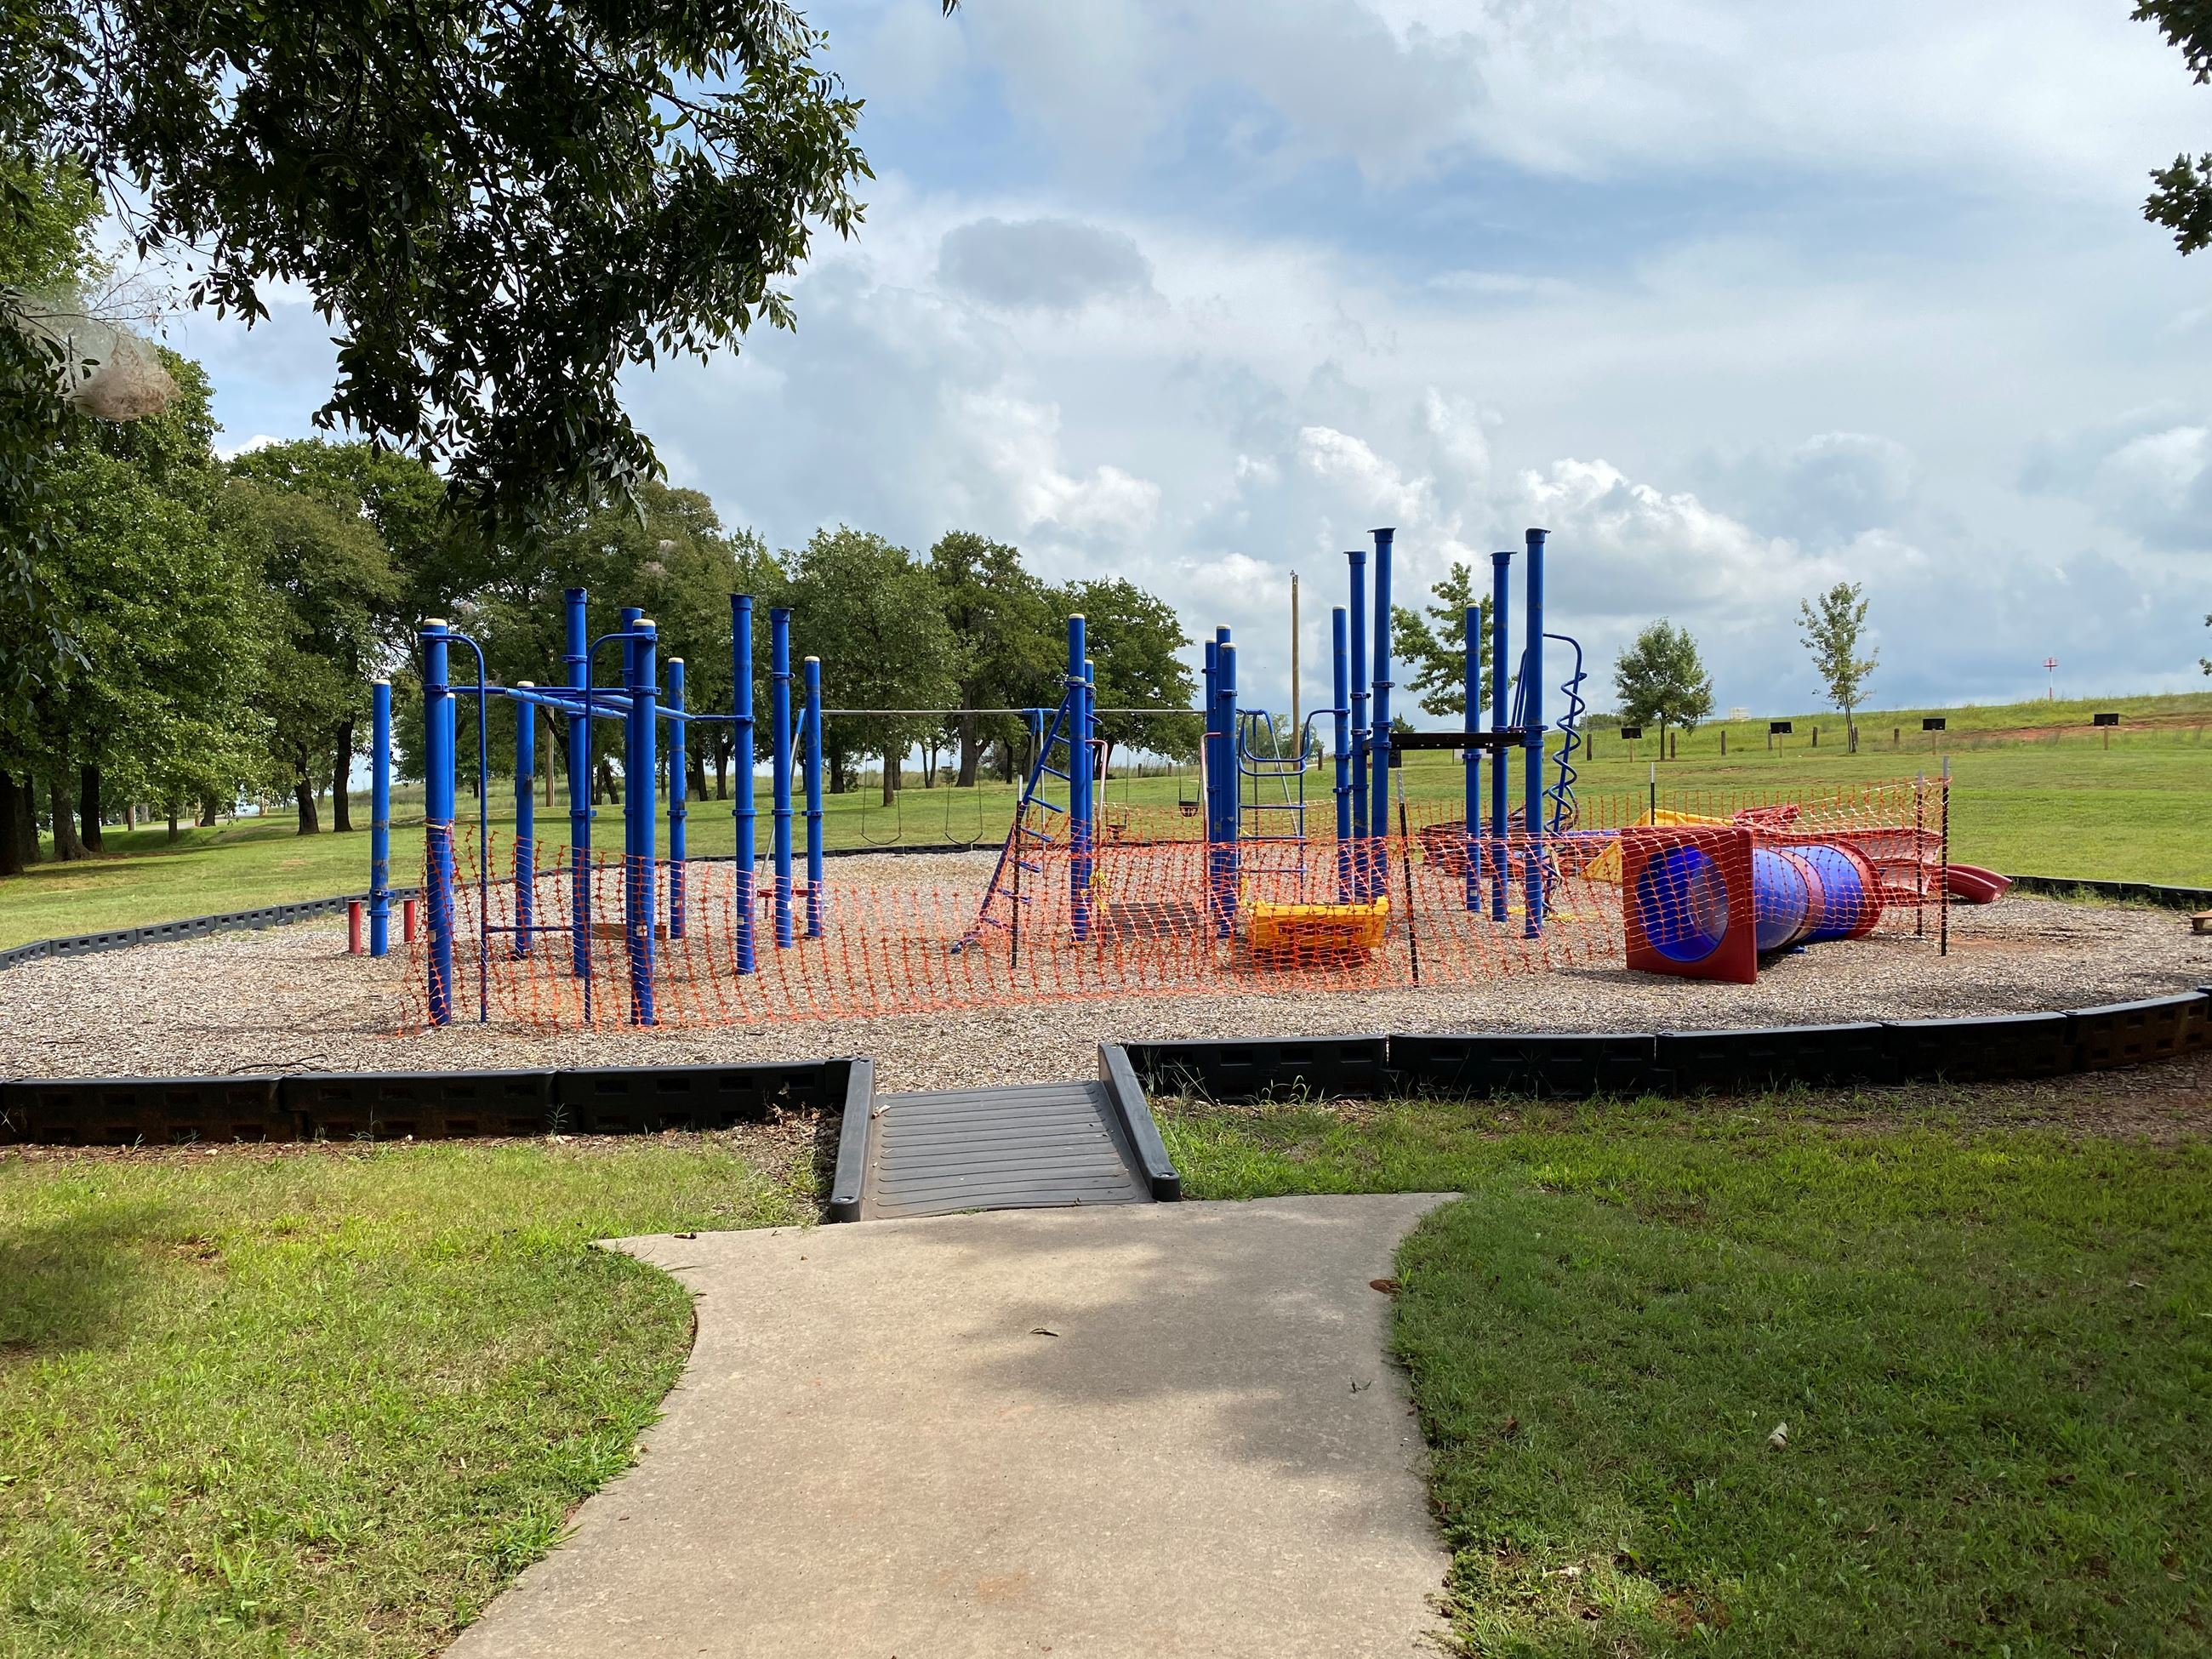 rotary play structure dismantled as of 9-2020